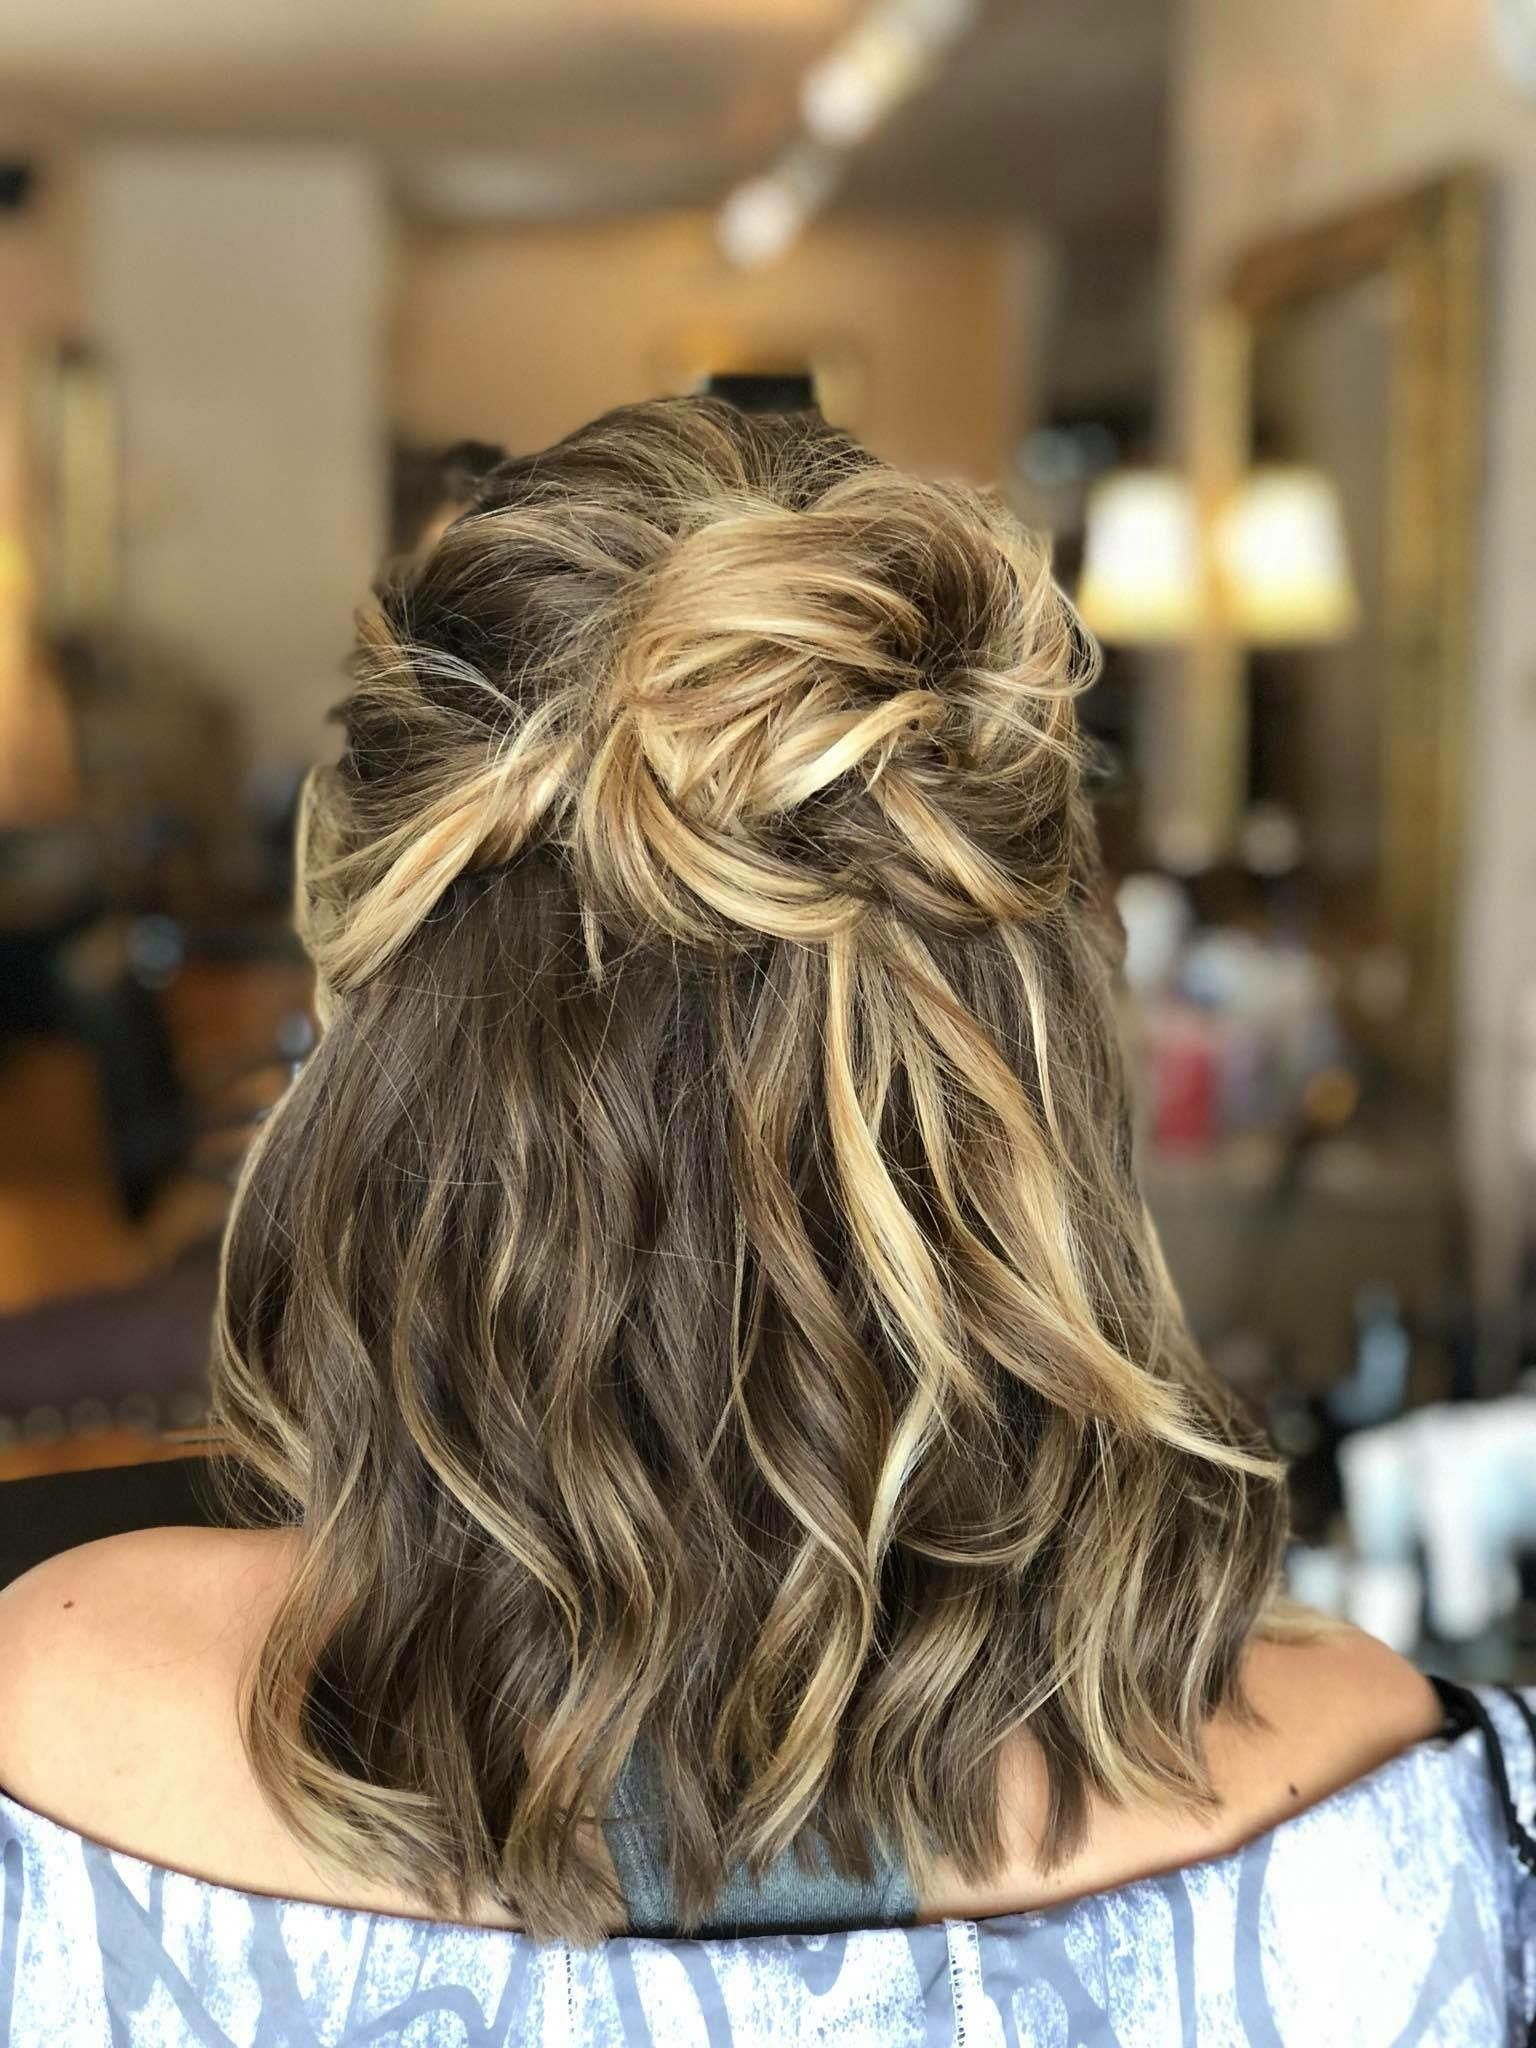 Prom Hair Half Up Half Down Curl Homecoming Bun Weddinghairstyleshalfuphalfdown Prom Hairstyles For Short Hair Half Up Hair Half Up Half Down Hair Prom